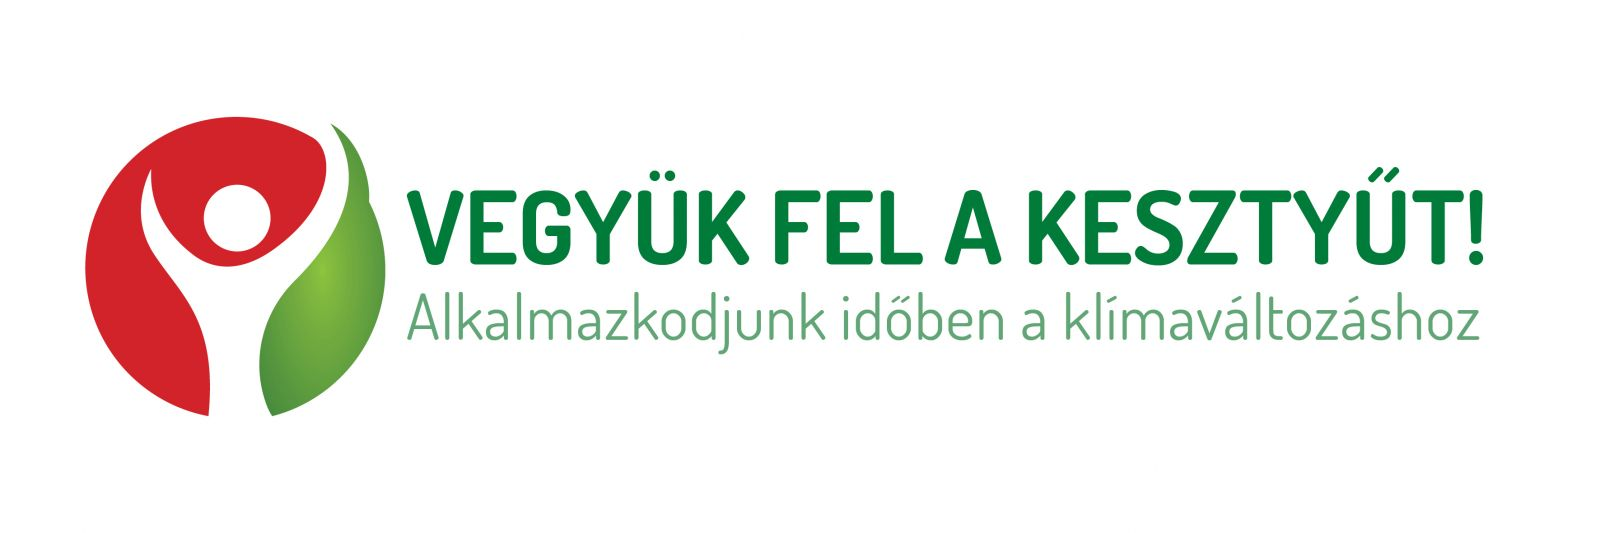 http://nakfo.mbfsz.gov.hu/sites/default/files/images/PROJEKT_LOGO.jpg